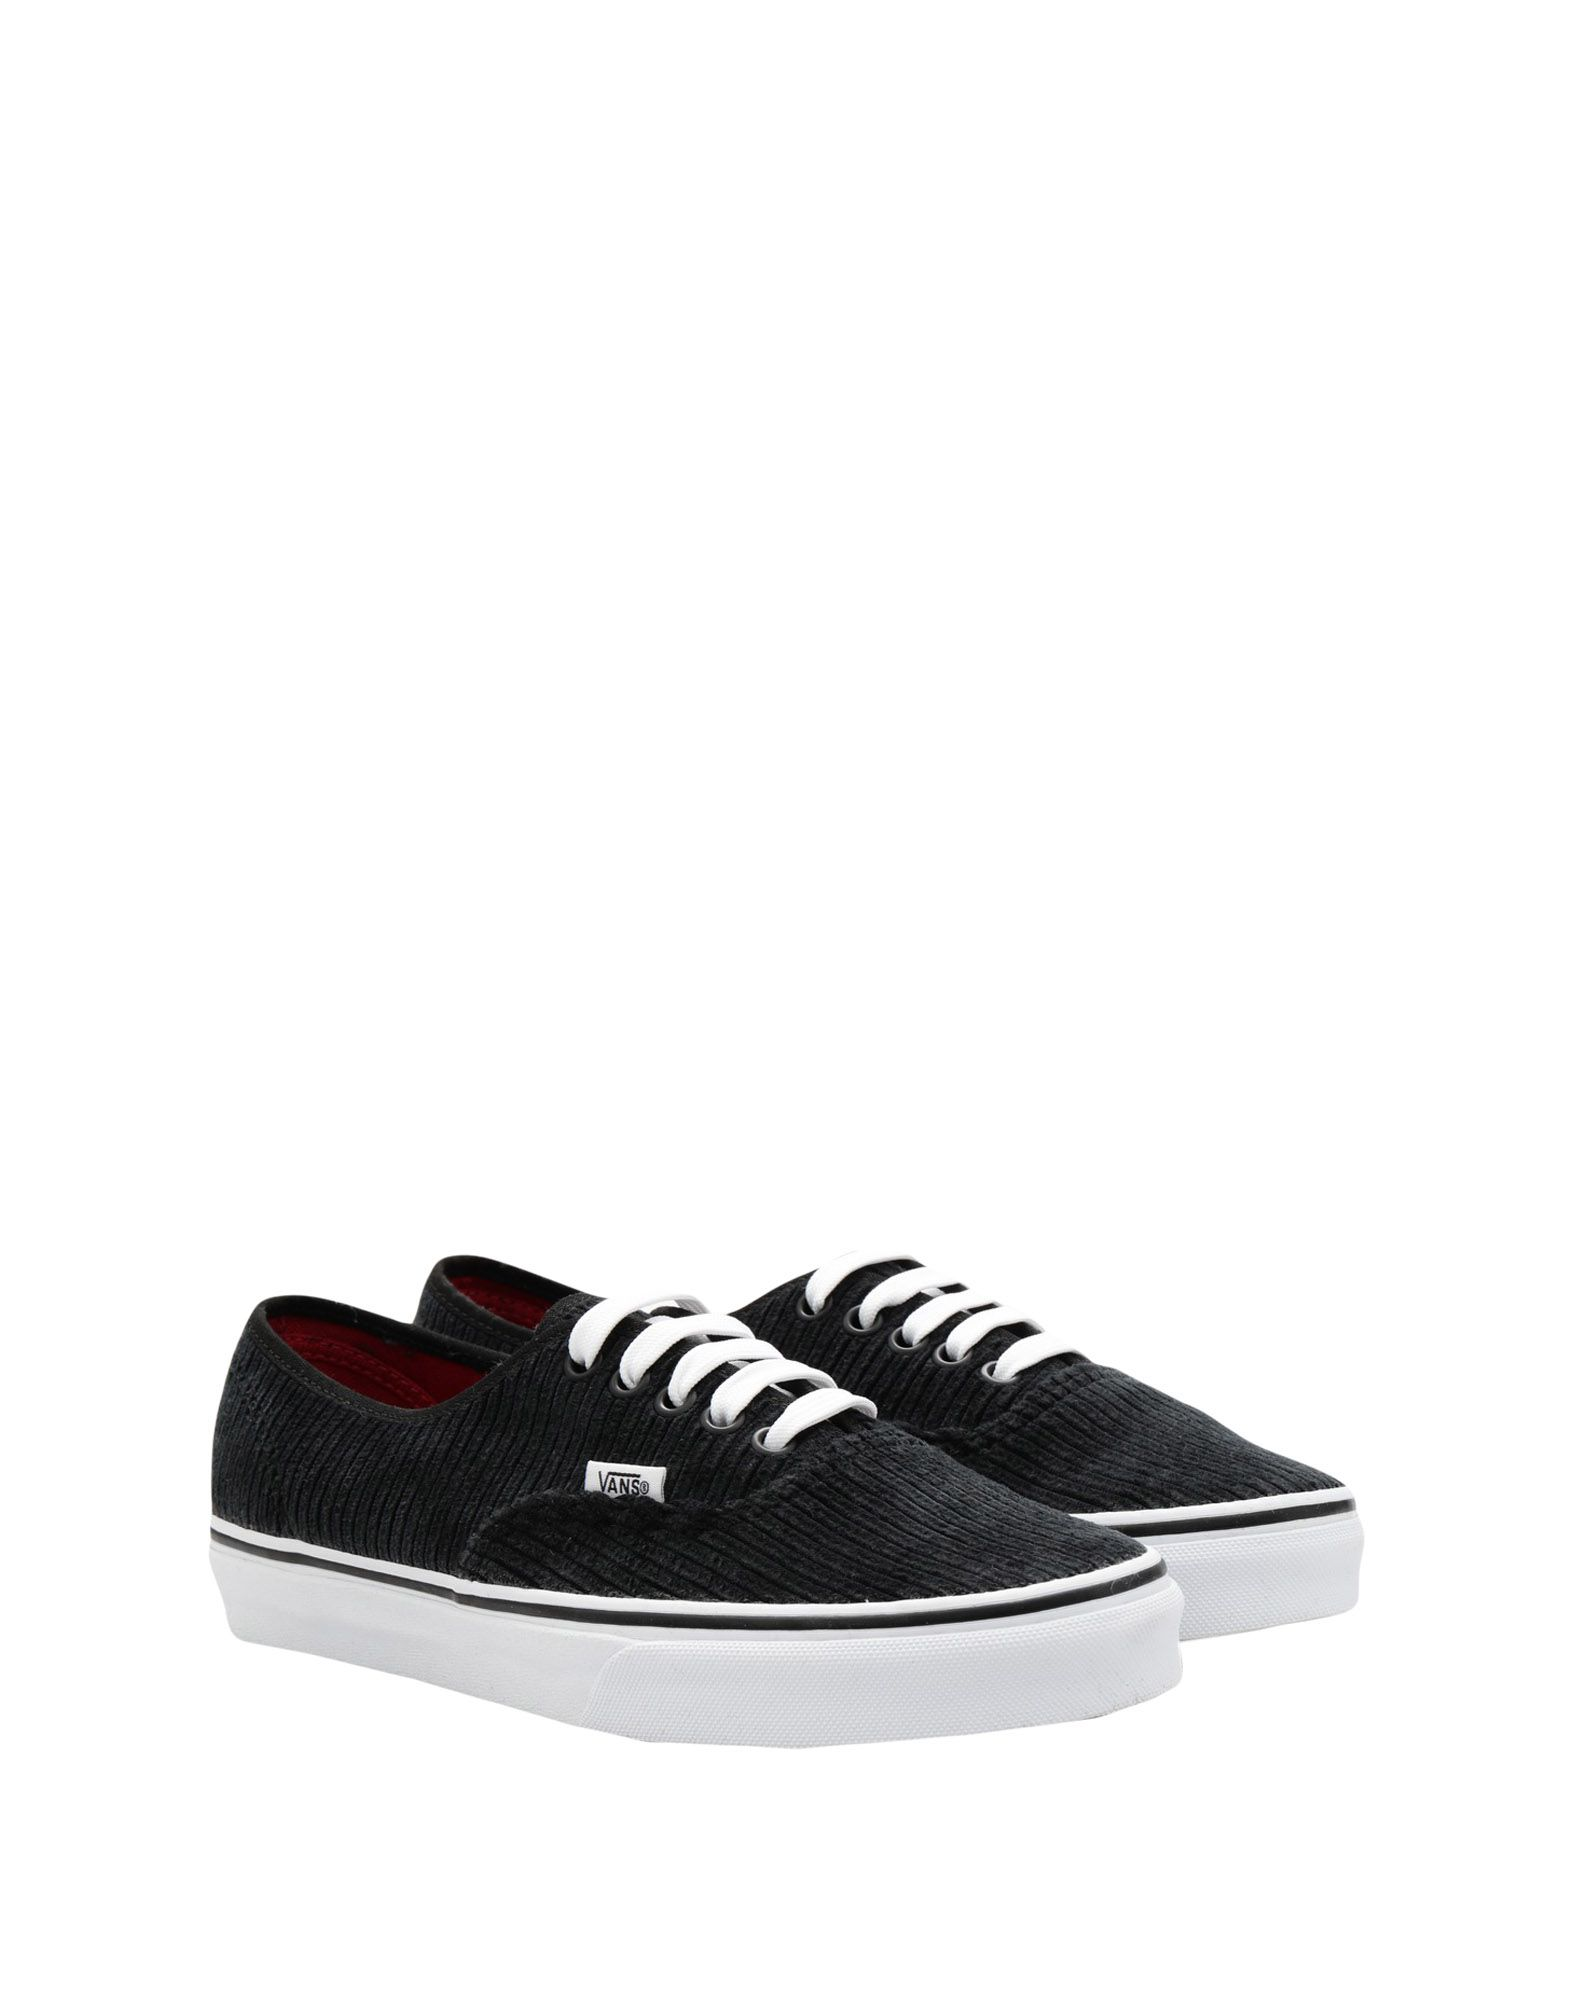 Vans Ua Authentic (Design Assembly) - Sneakers Sneakers Sneakers - Women Vans Sneakers online on  Canada - 11571747II b12b71